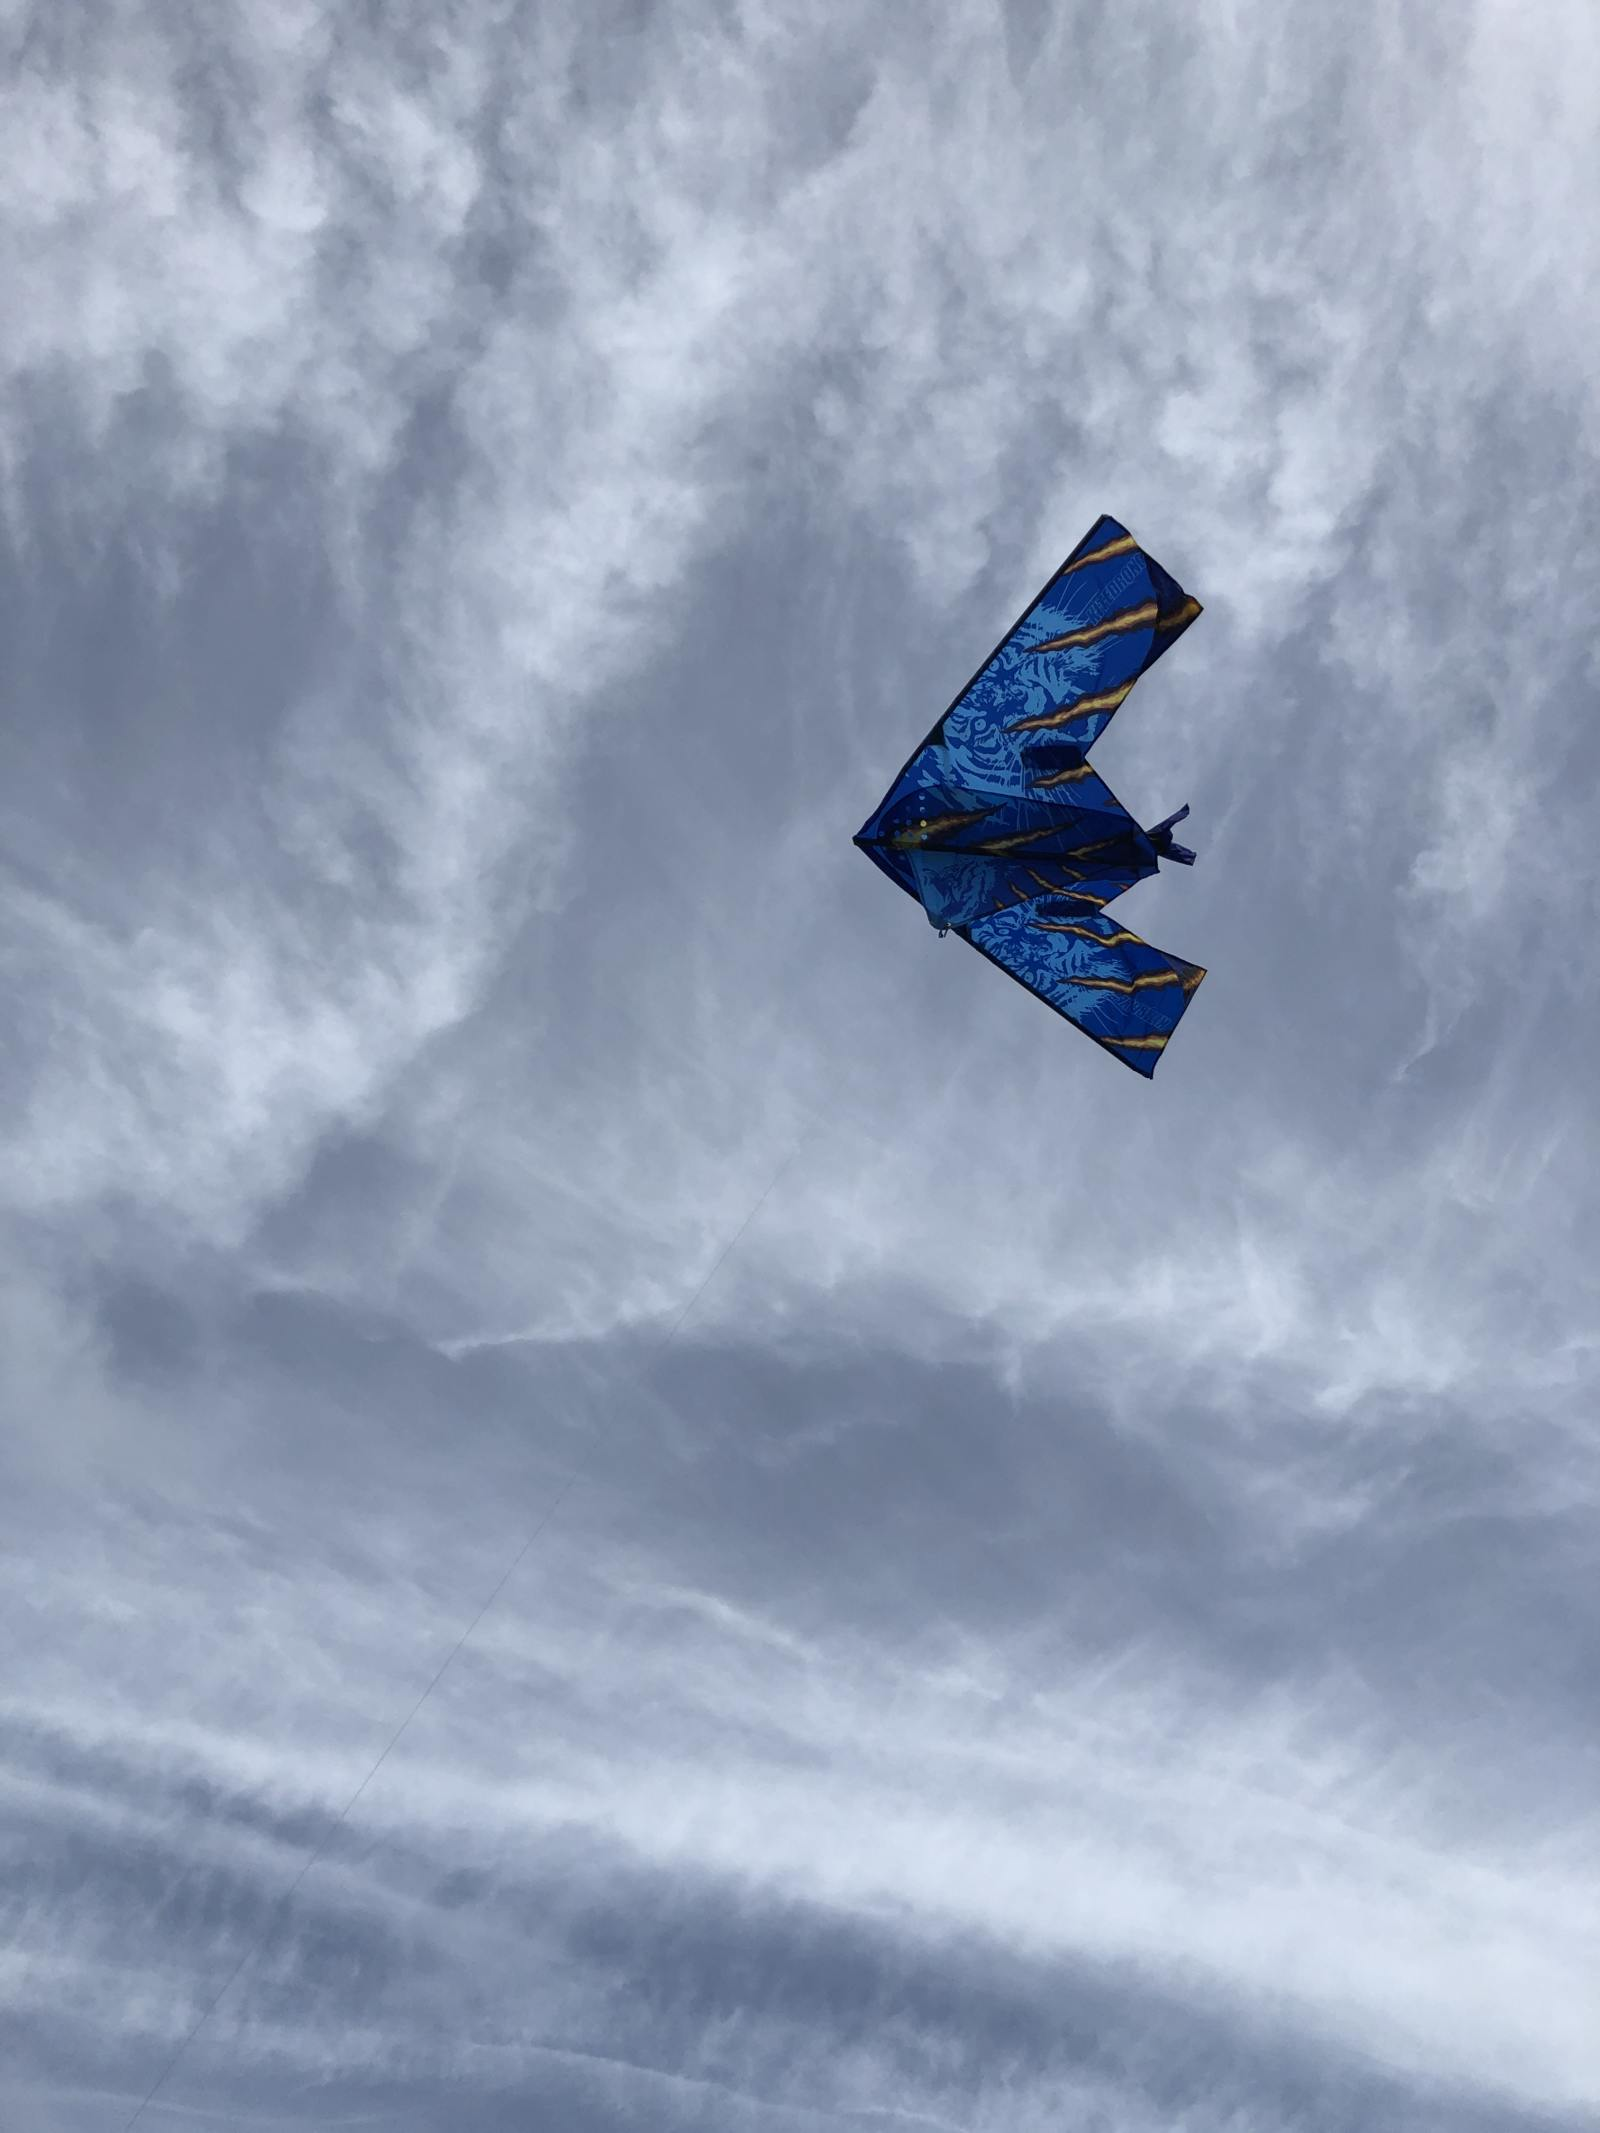 kitedrone kite in the cloudy sky